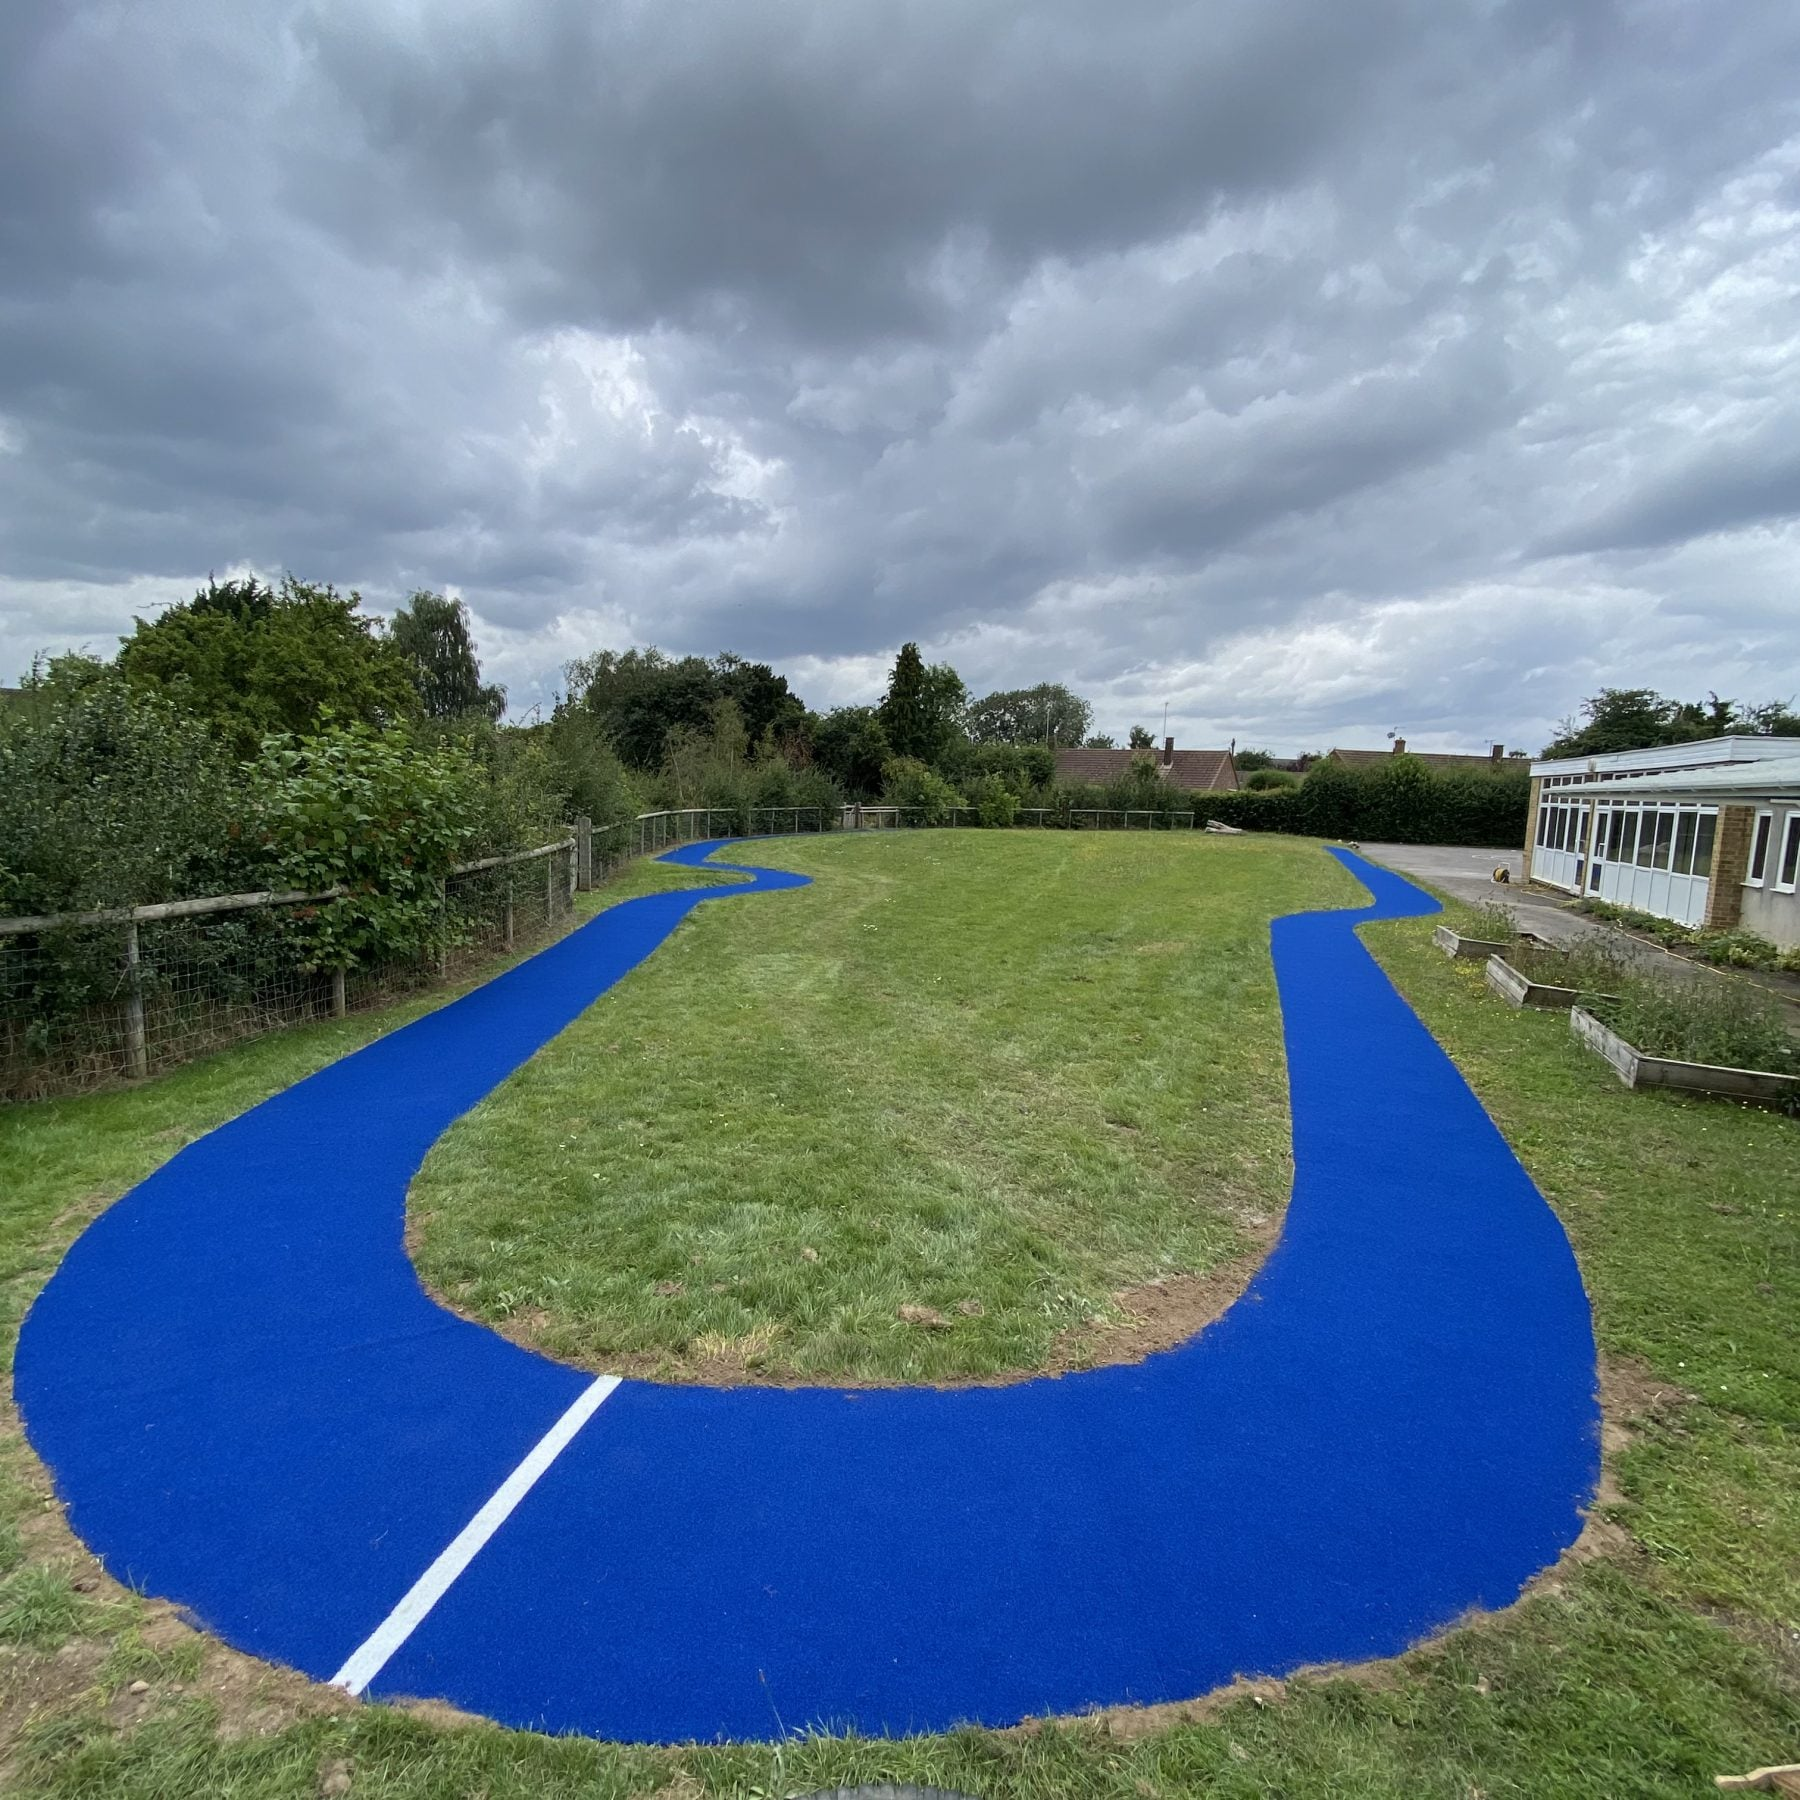 Active Play Blue - August 2021 - High Wycombe